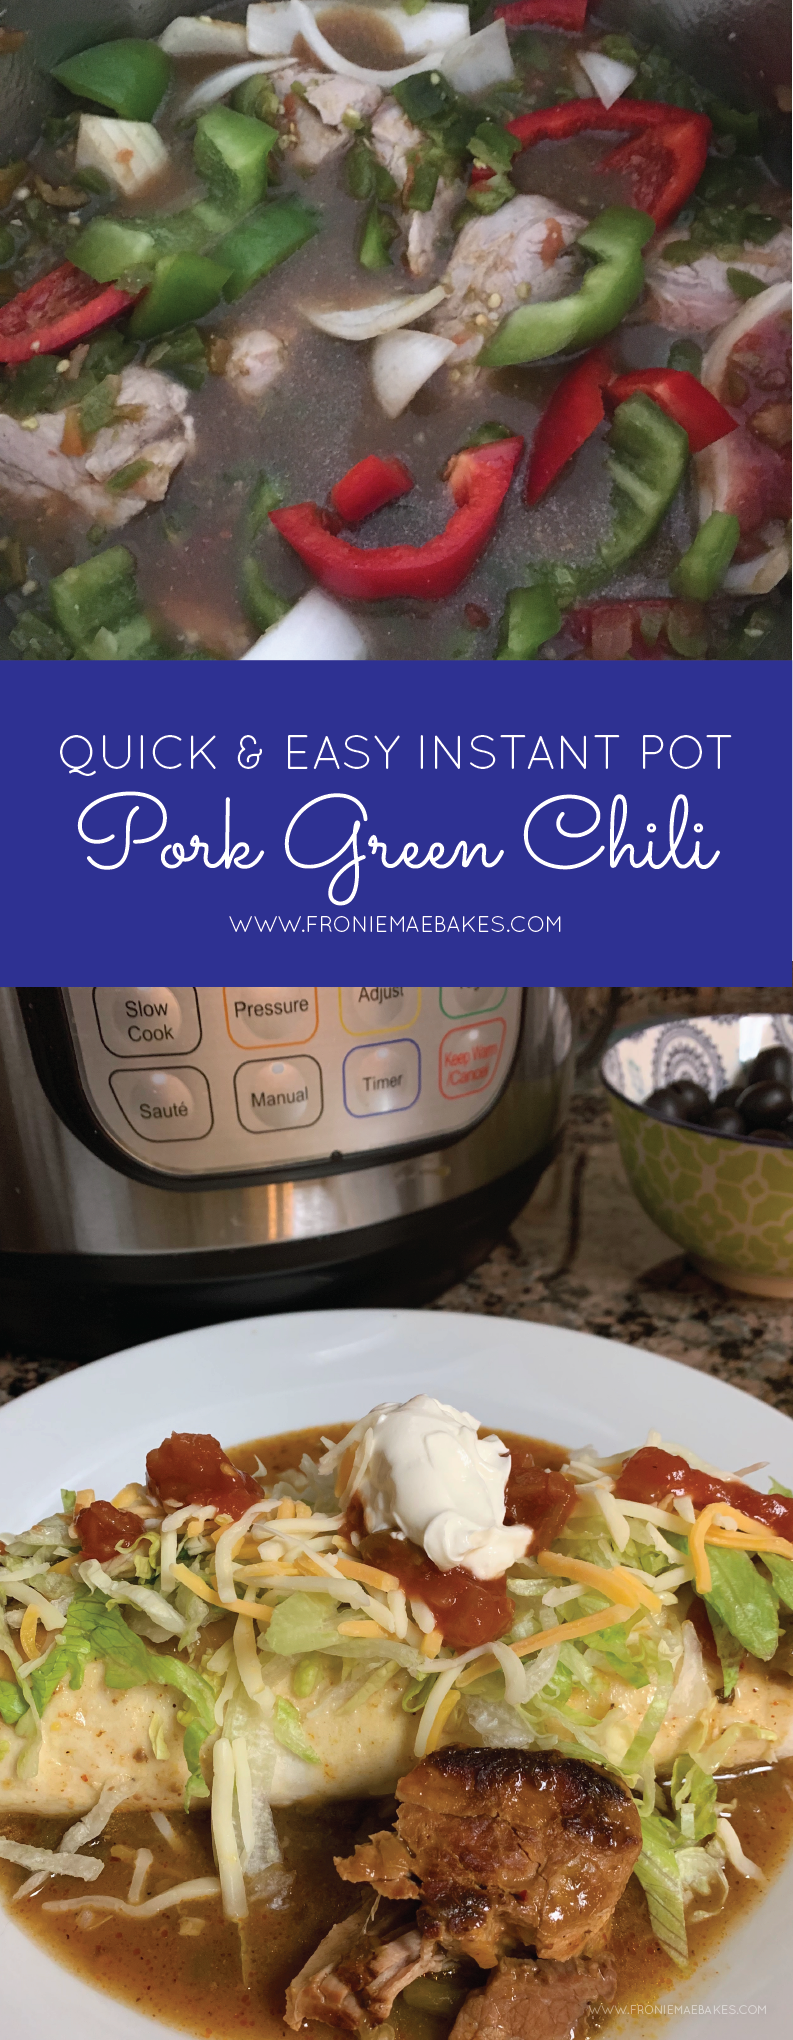 Fronie Mae Bakes Instant Quick and Easy Pot Pork Green Chili-01.png